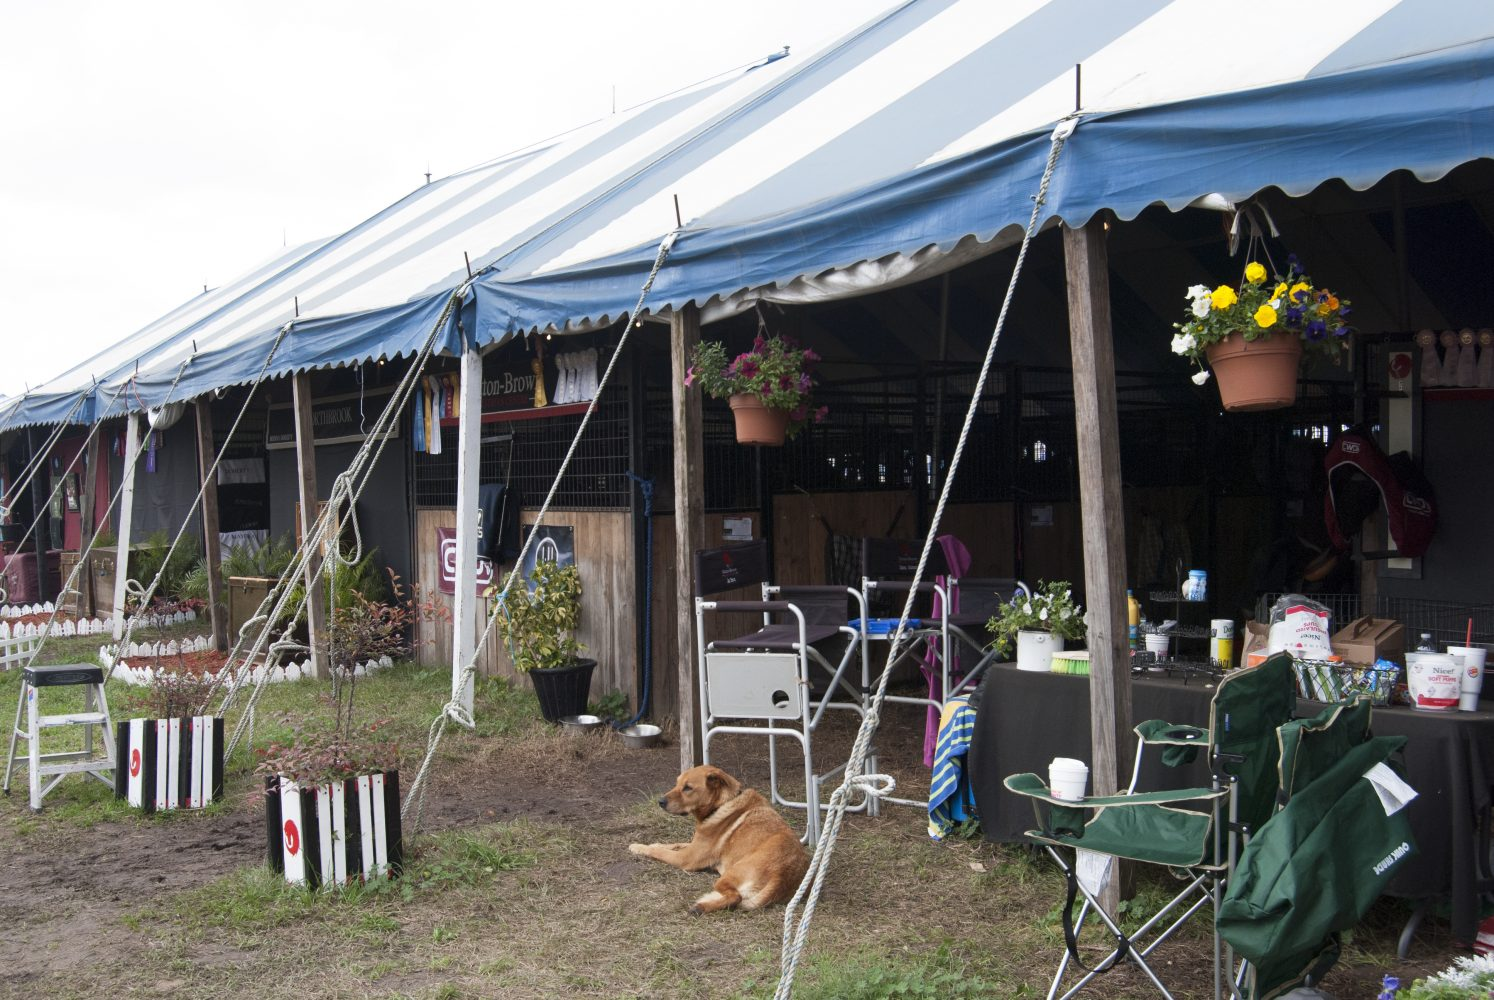 Whether it be locals or travelers from afar, HITS participants' set up temporary stables for the 10-week circuit as each barn claims its territory with signs, decorations and ribbons from past competitions.